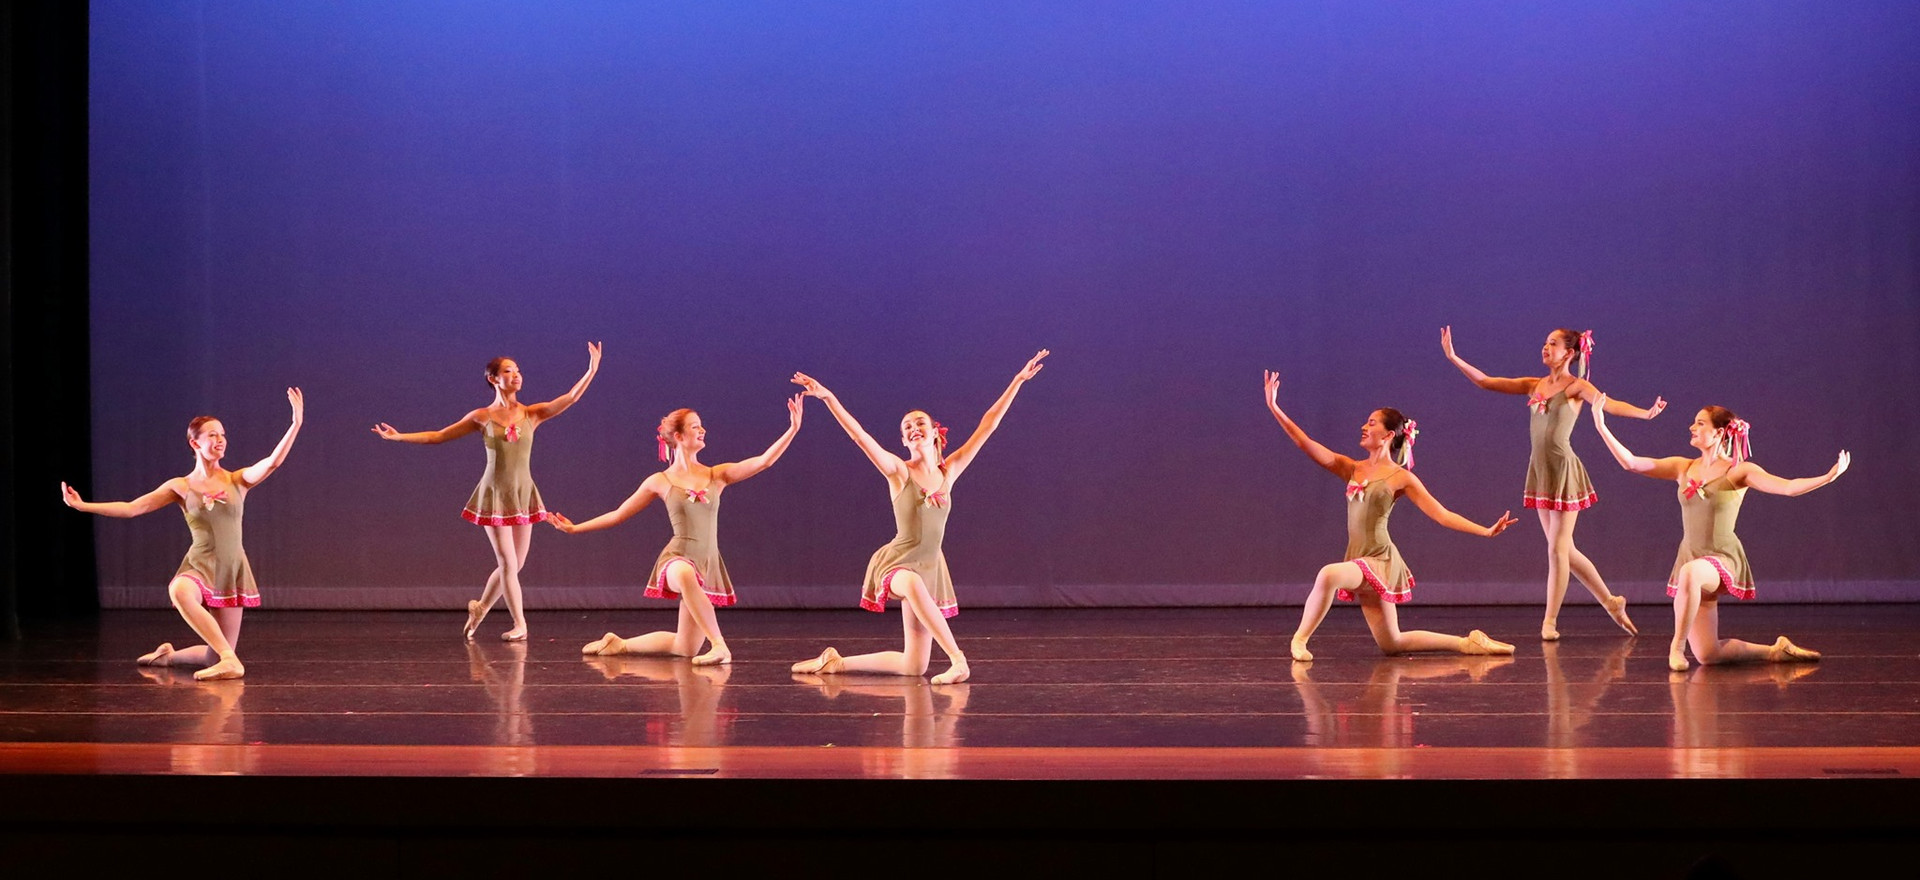 Caprice, choreographed in 1996 by director Kelly Lannin. This light and refreshing piece is set to the music of American composer William Walton.